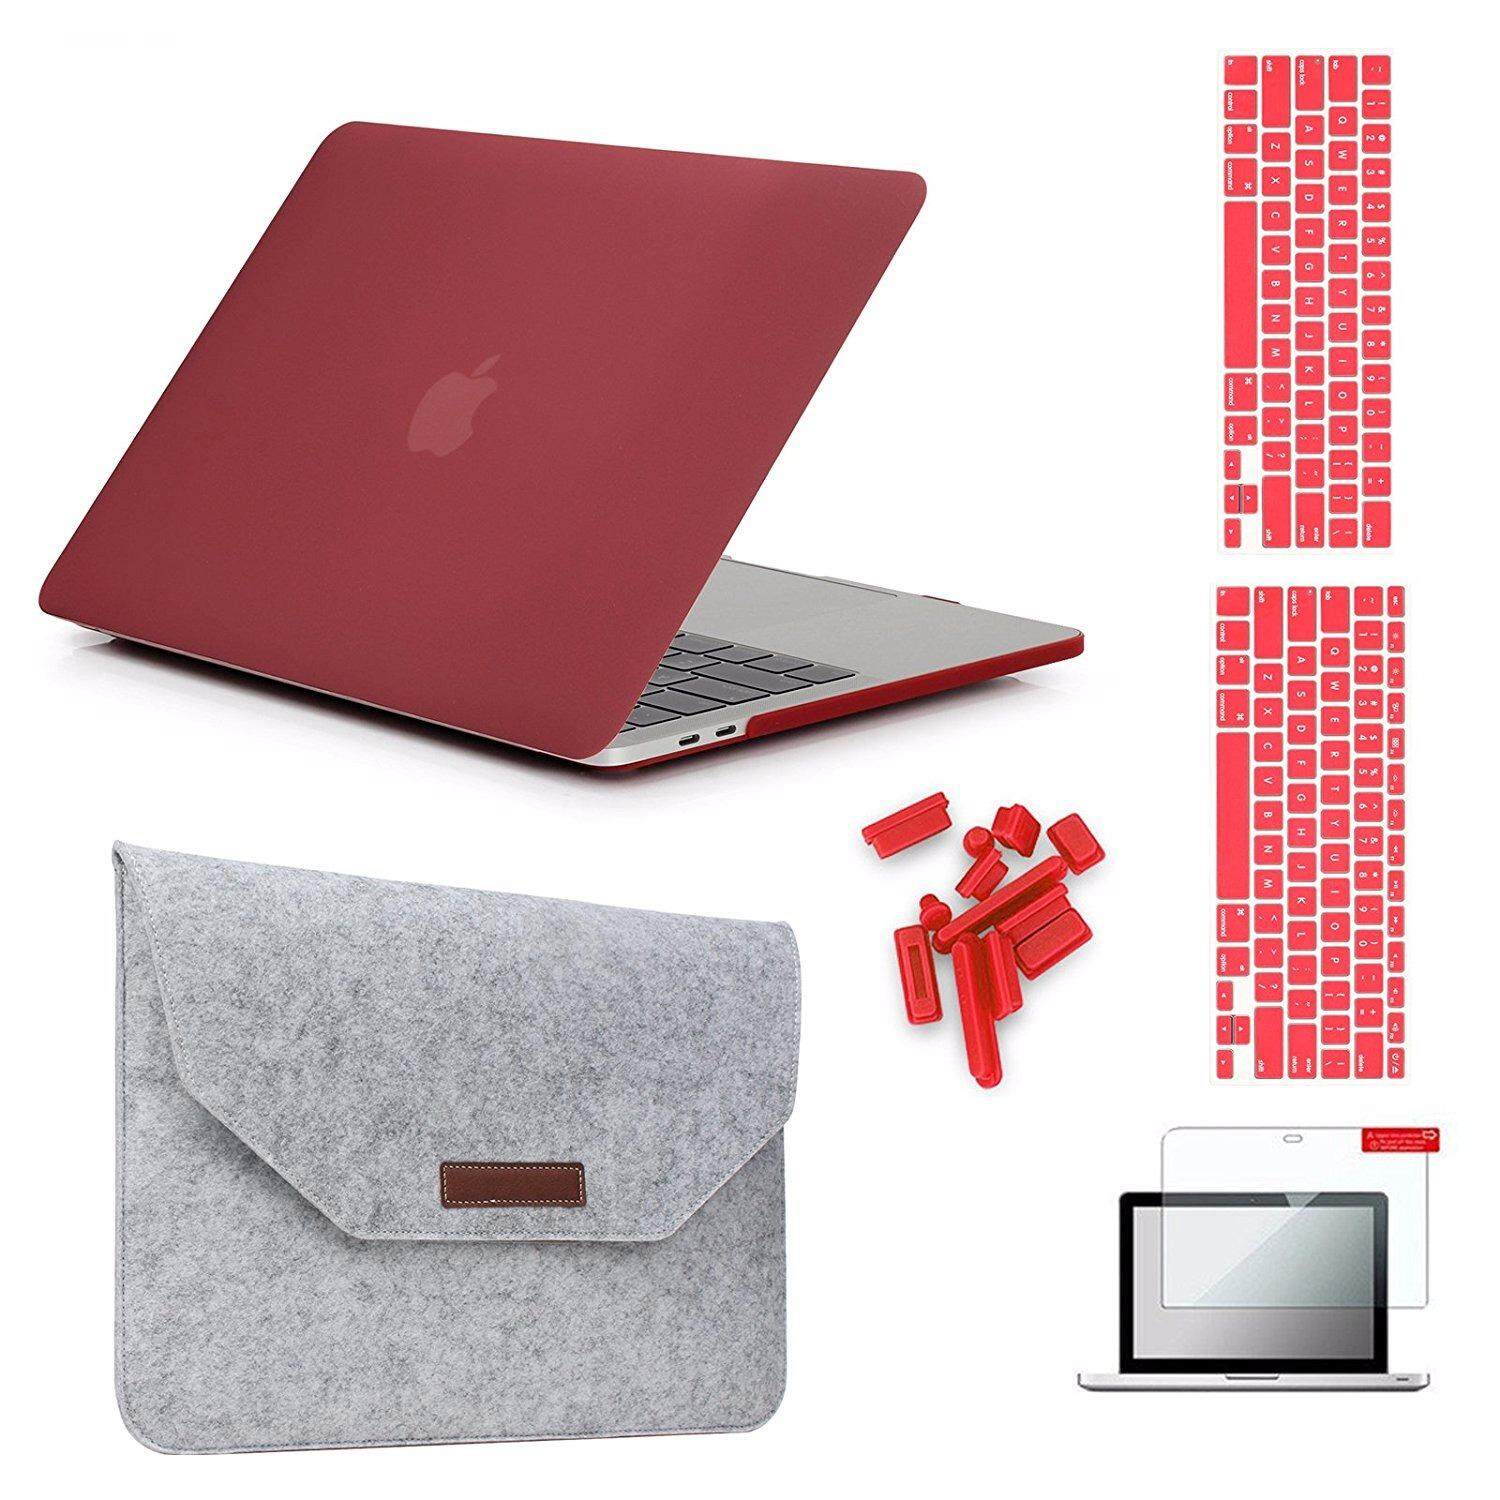 MacBook Pro 13(2016 & 2017 Version) Hardshell Case & Felt Sleeve[5 in 1 Bundle] with Screen Protector,Keyboard Cover & Dust Plug for MacBook Pro 13 with/without Touch Bar A1706/A1708